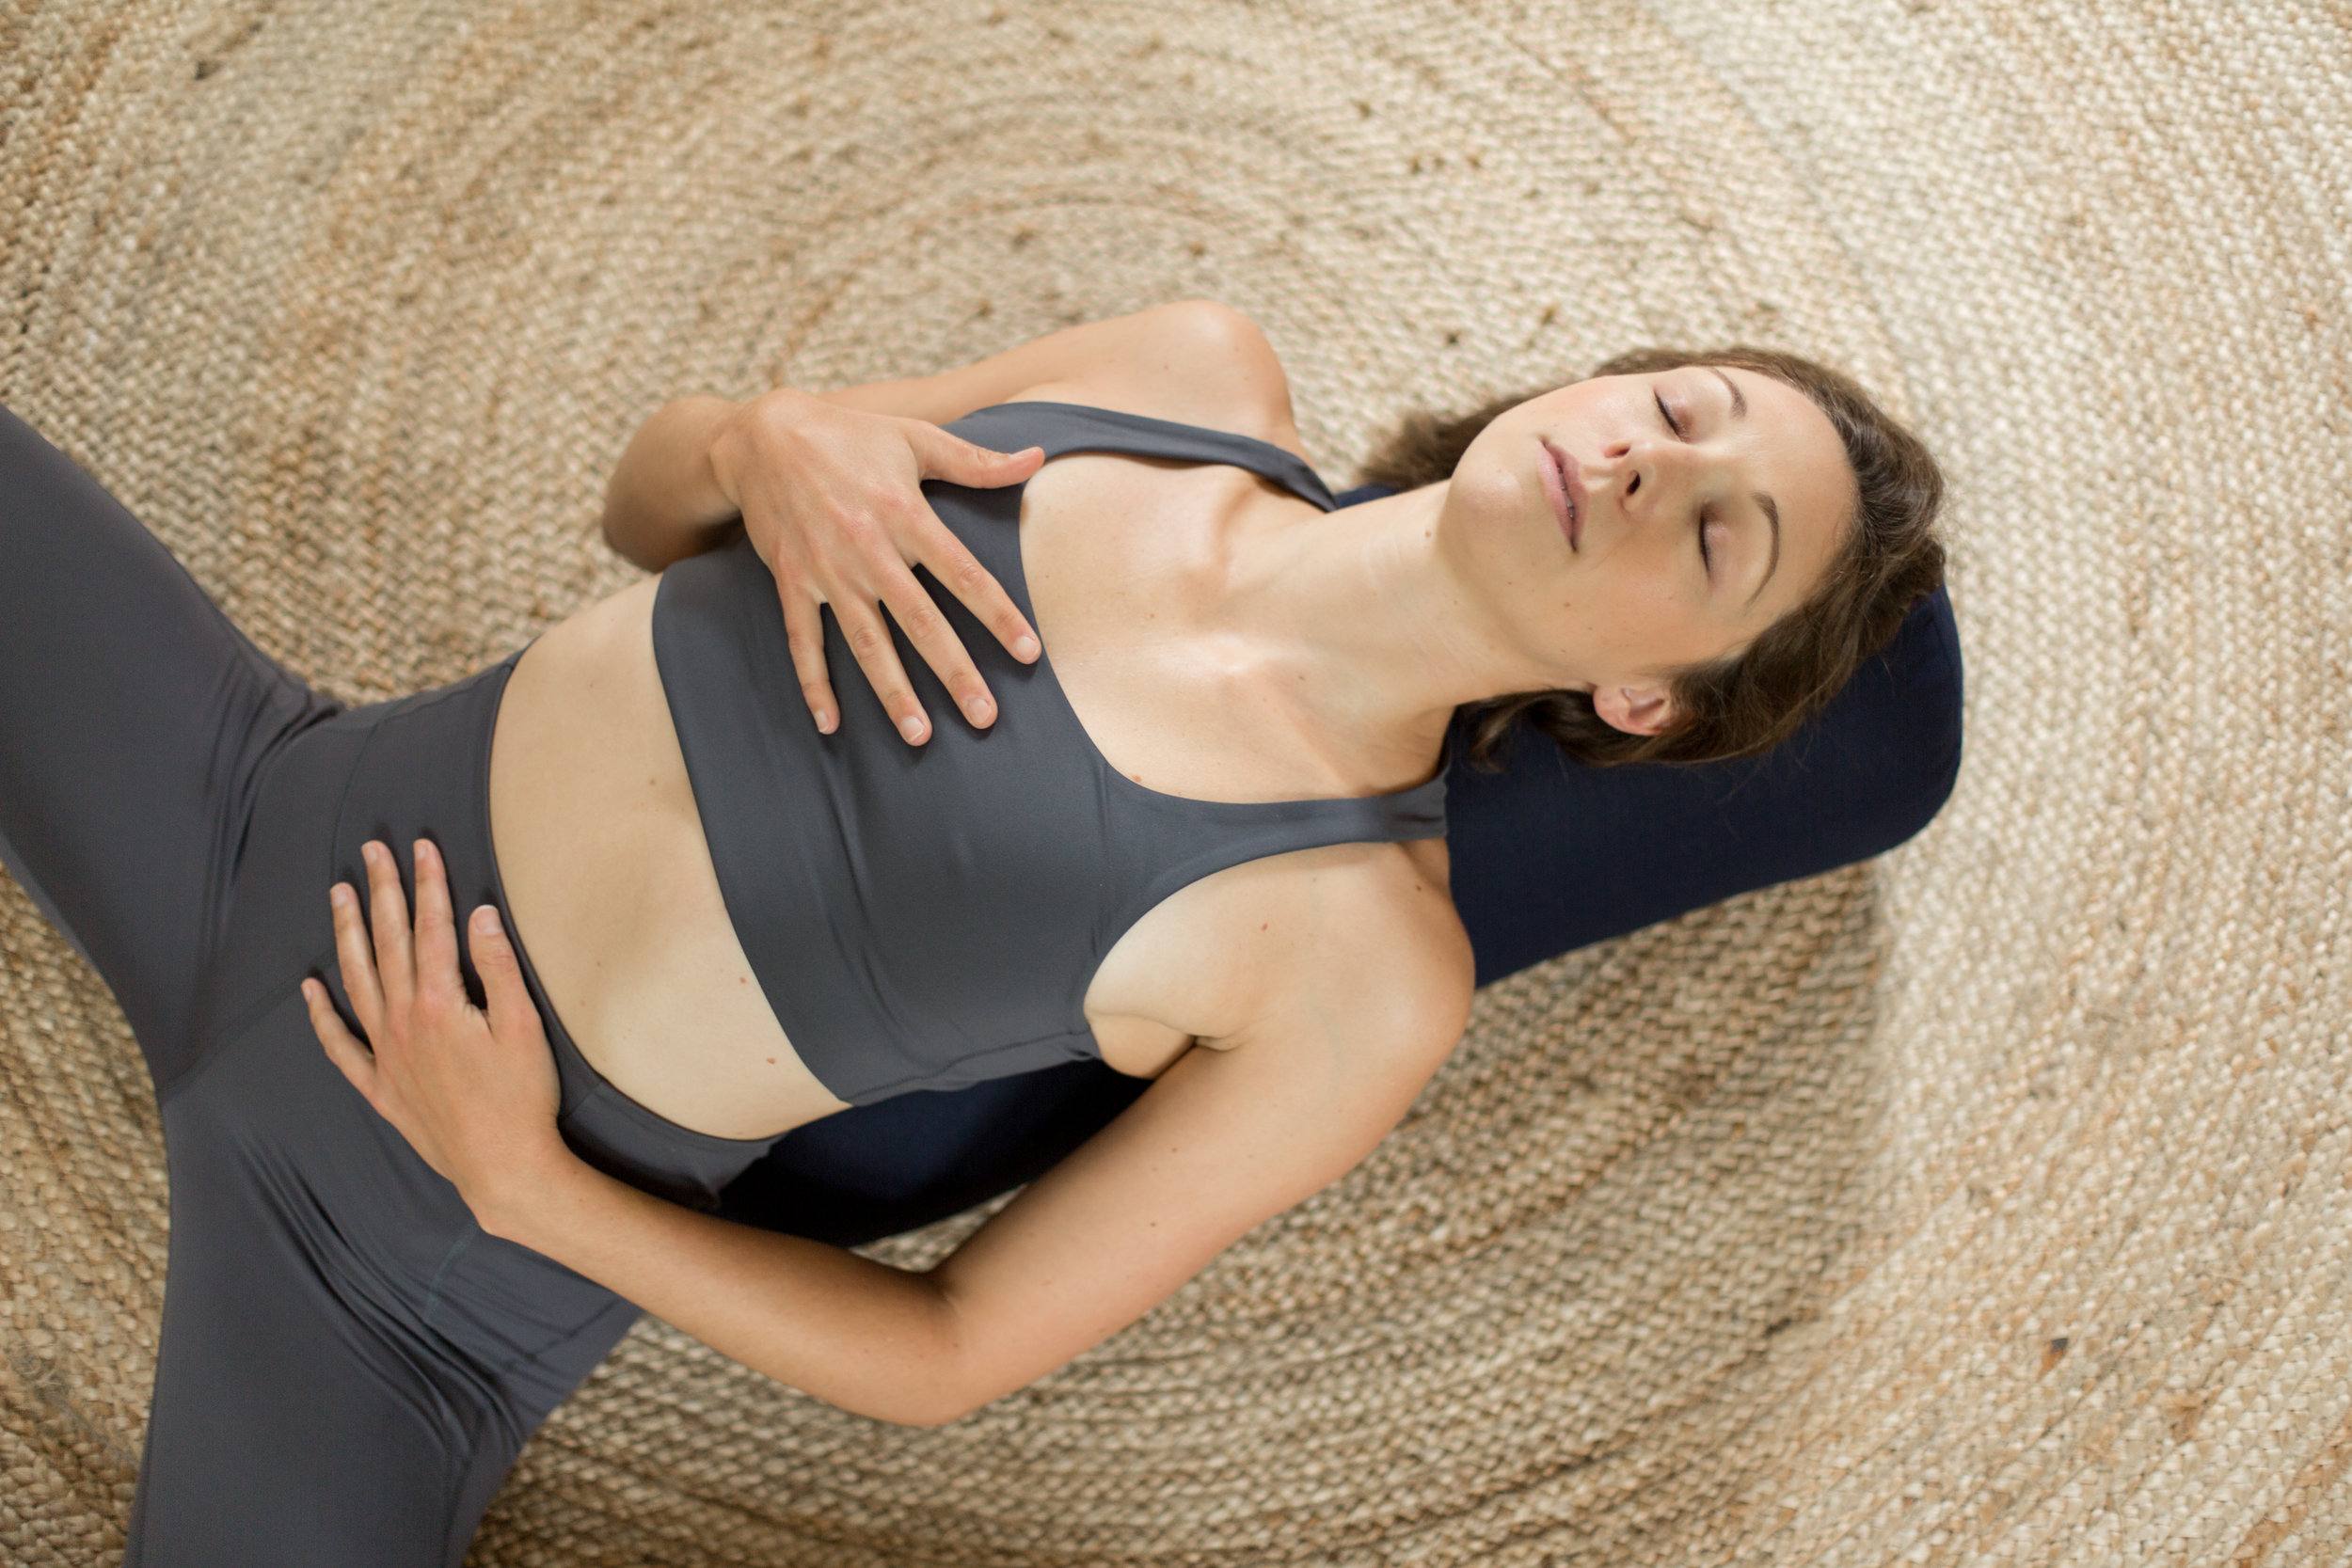 Women lying on a yoga bolster practicing restorative yoga. She has one hand on her heart and one hand on her chest and is focusing on breathing exercises to lower tension and stress.